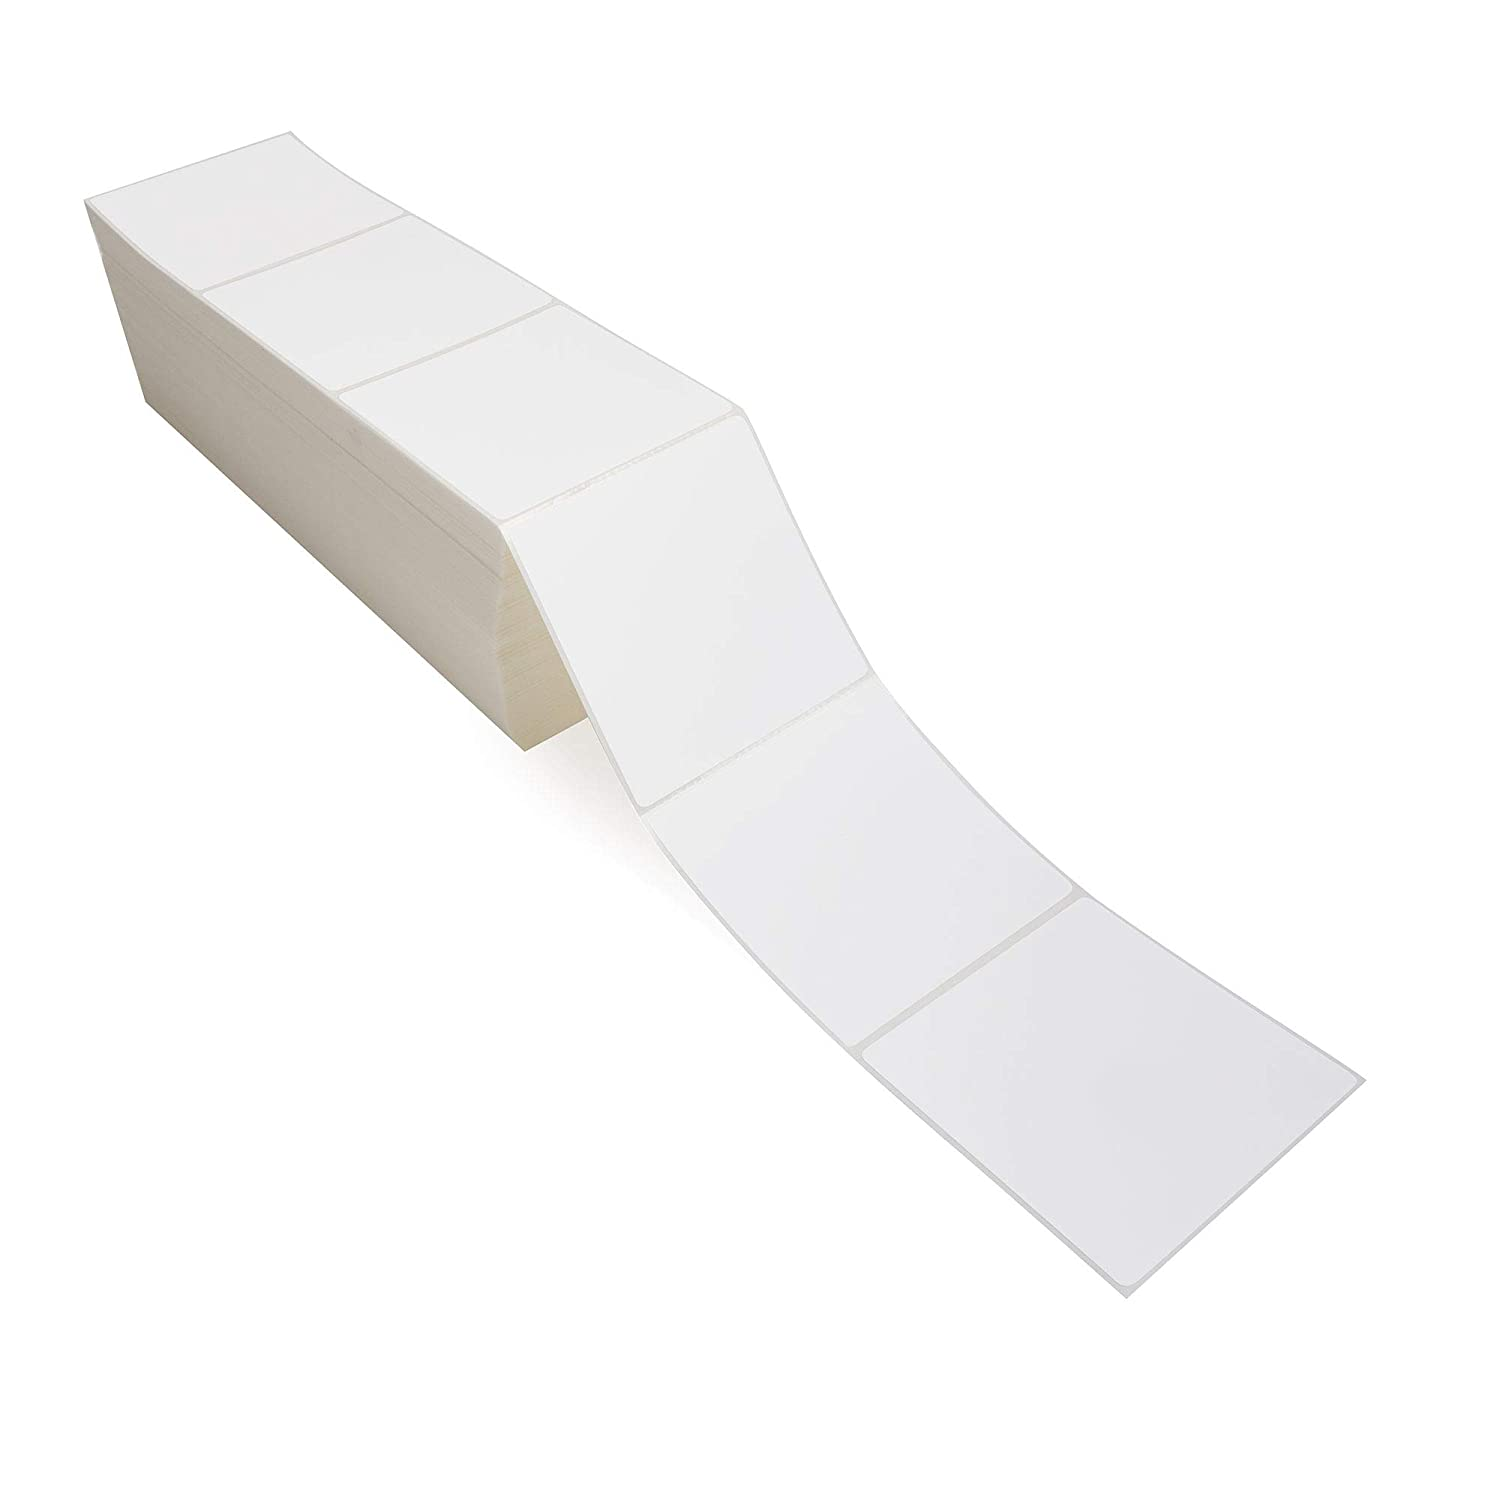 4x4 Direct Thermal Fanfold Labels 6000 Labels Per Box Smith Corona